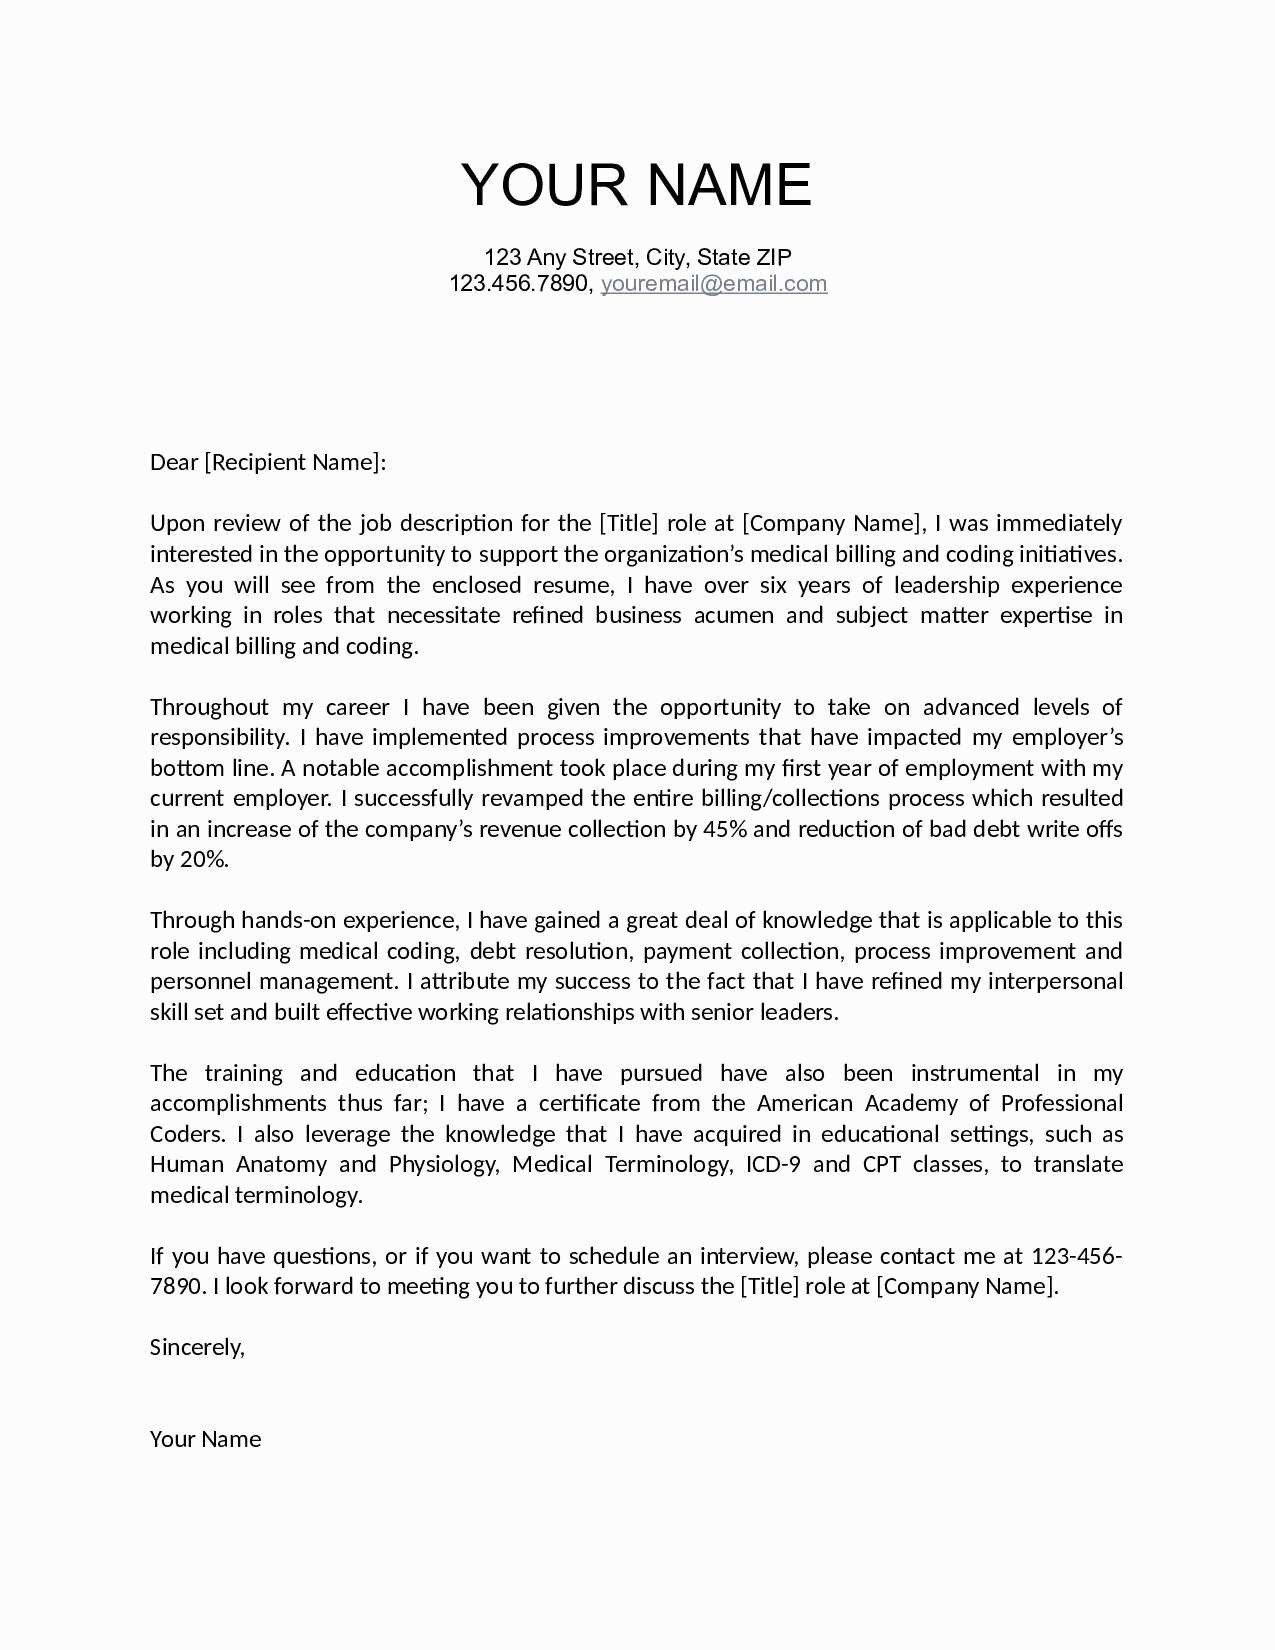 mortgage commitment letter template Collection-Mortgage mitment Letter Sample Lovely Job Fer Letter Template Us Copy Od Consultant Cover Letter Fungram 17-c